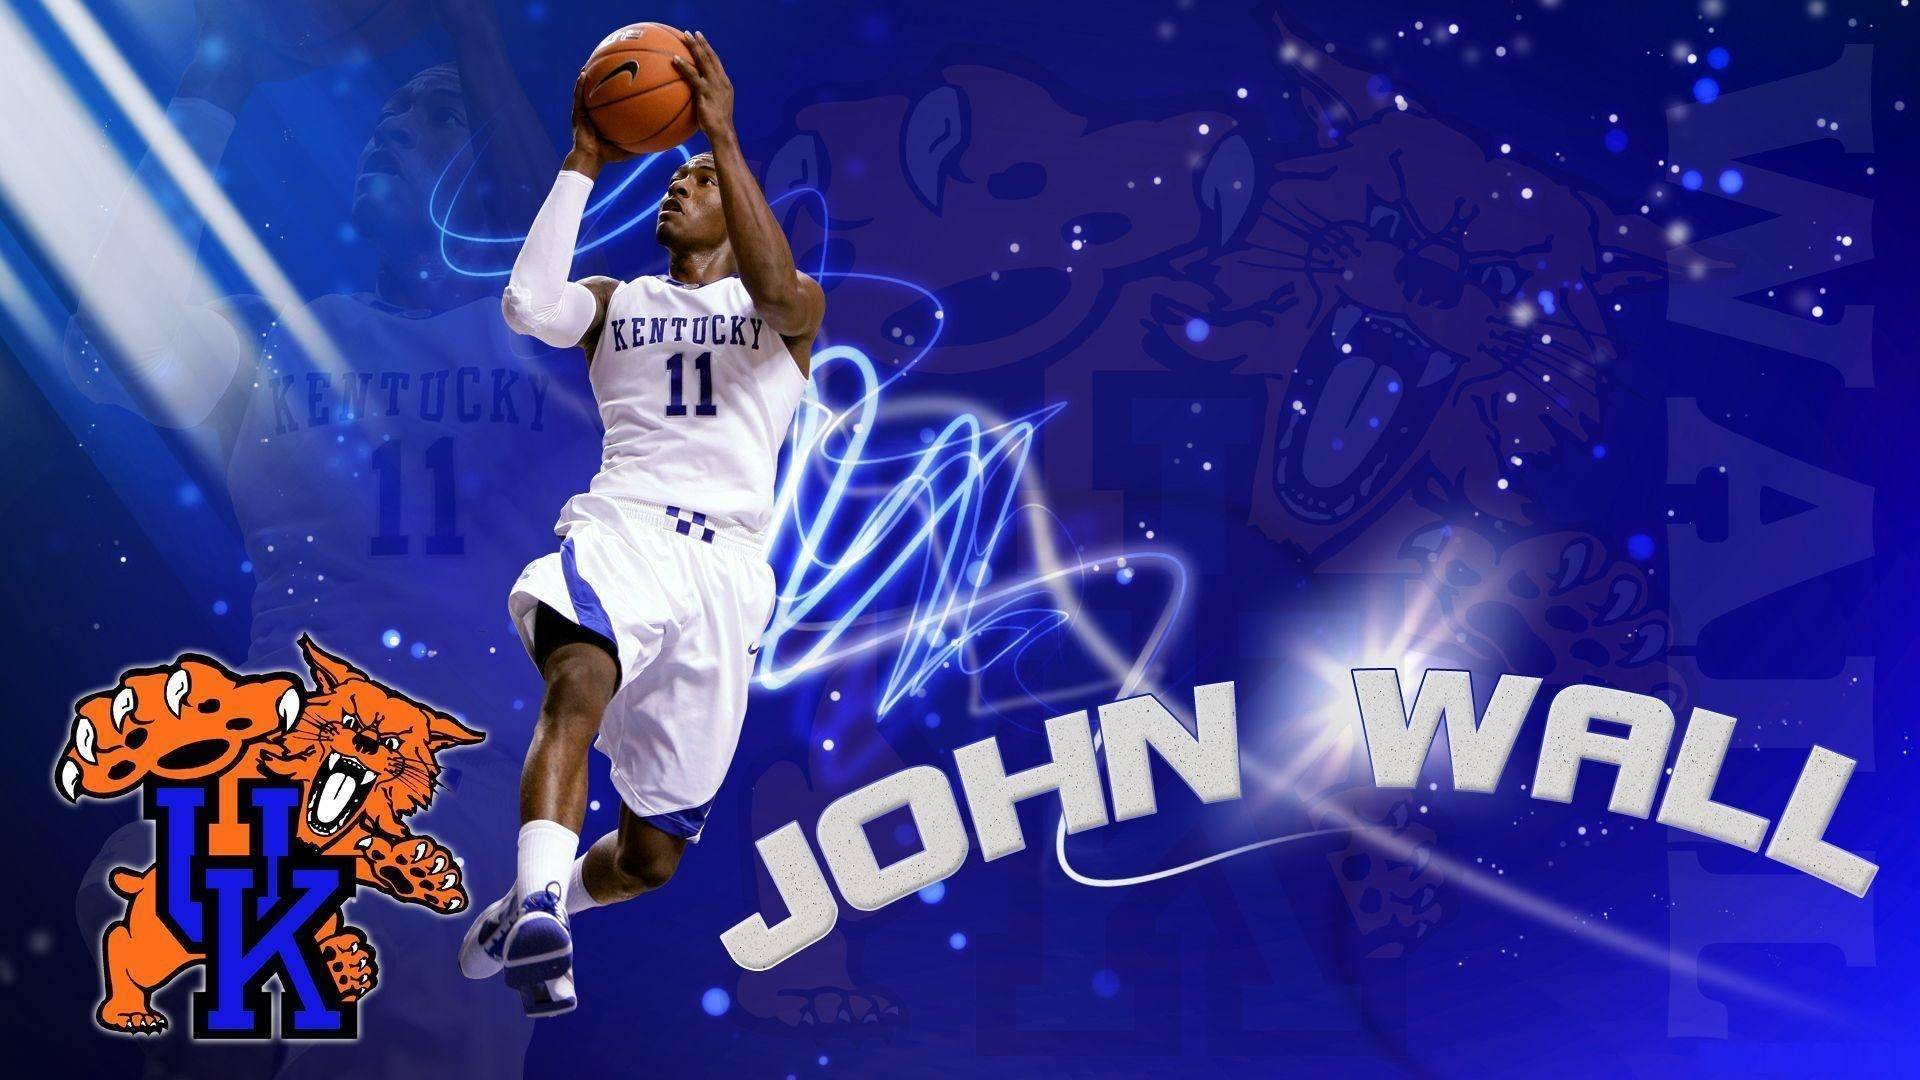 1920x1080 Screen HD Kentucky Wildcats Wallpapers.